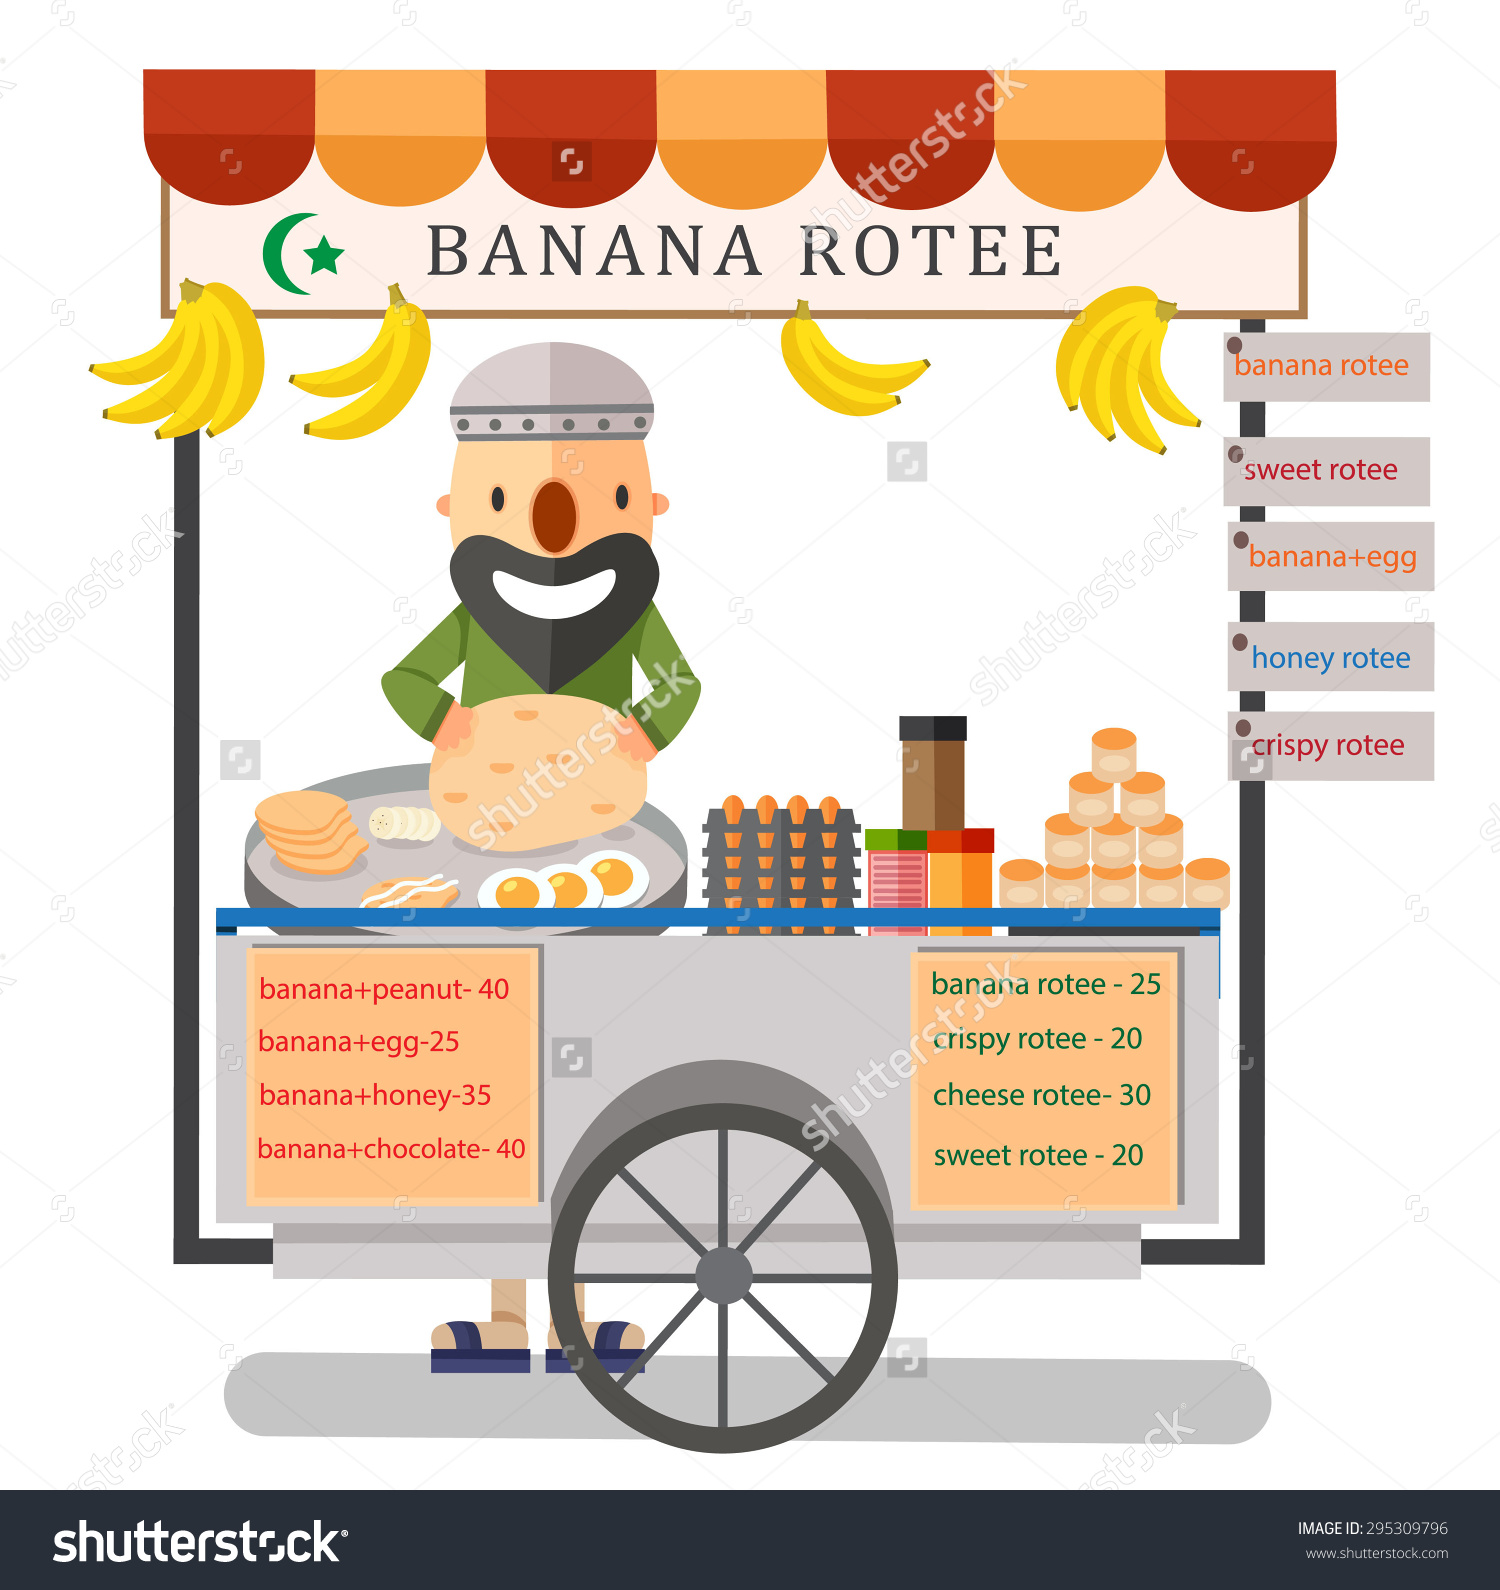 Street Food Rotee Vendor Bangkok Thailand Stock Vector 295309796.